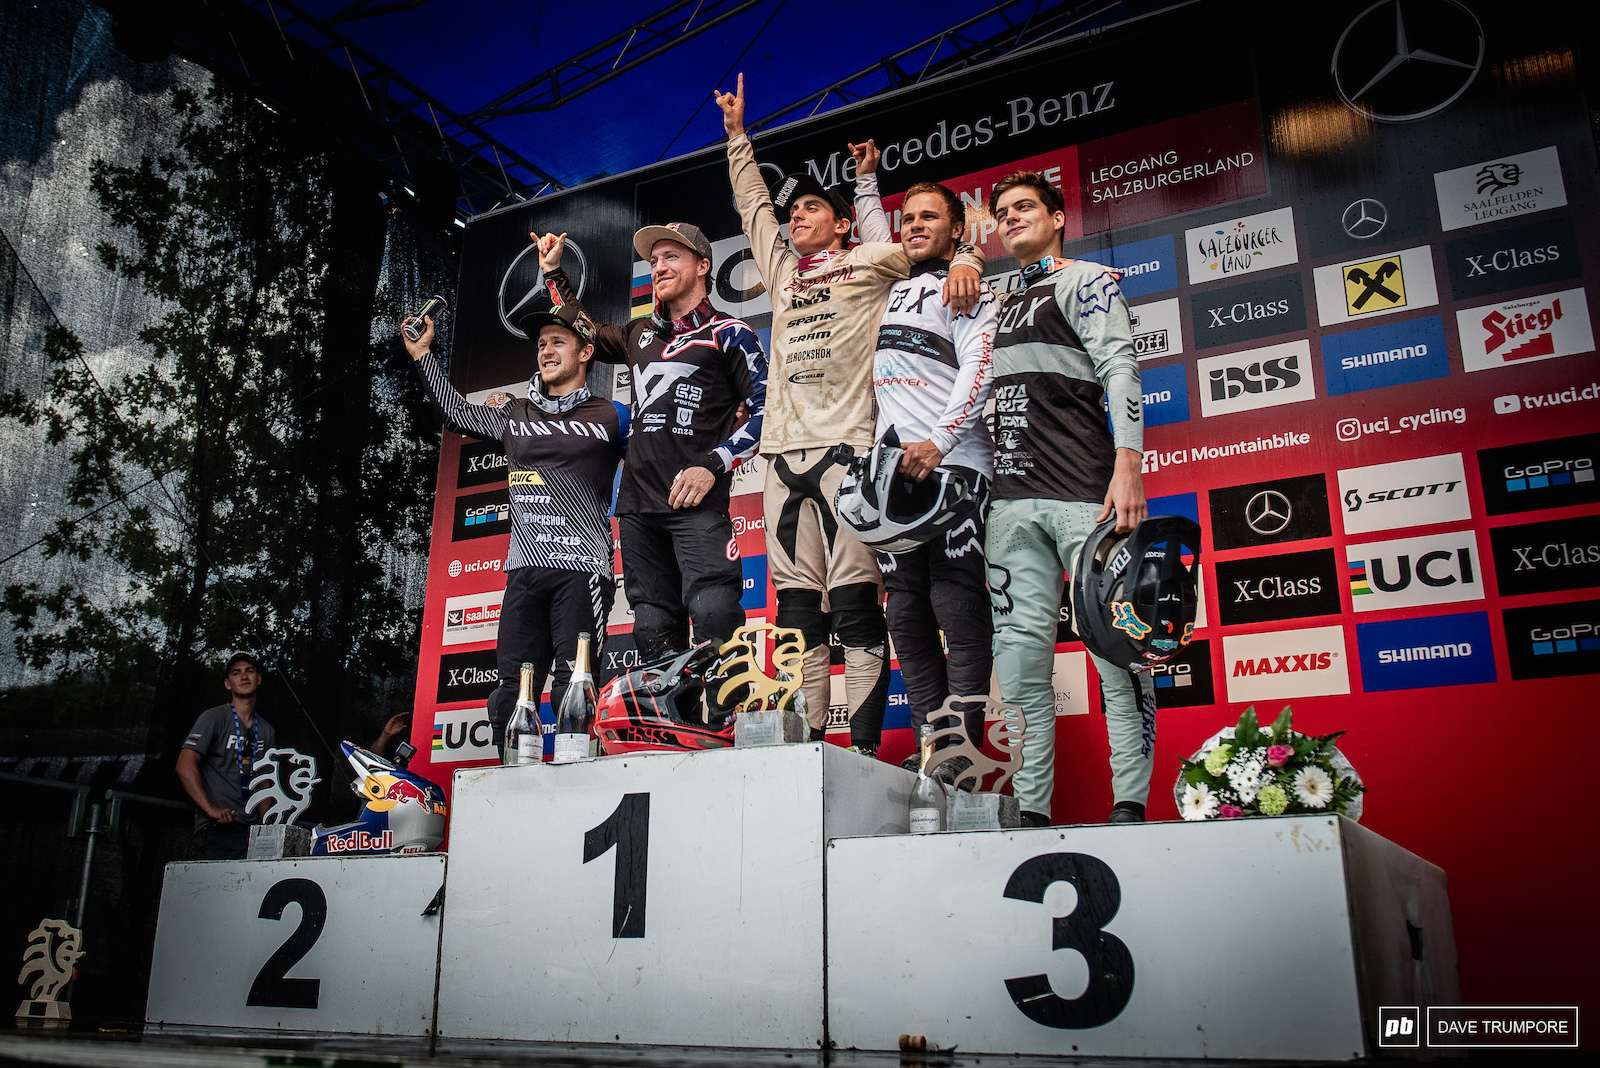 The fastest five men in Leogang with Amaury Pierron on the top step for the second week in a row.